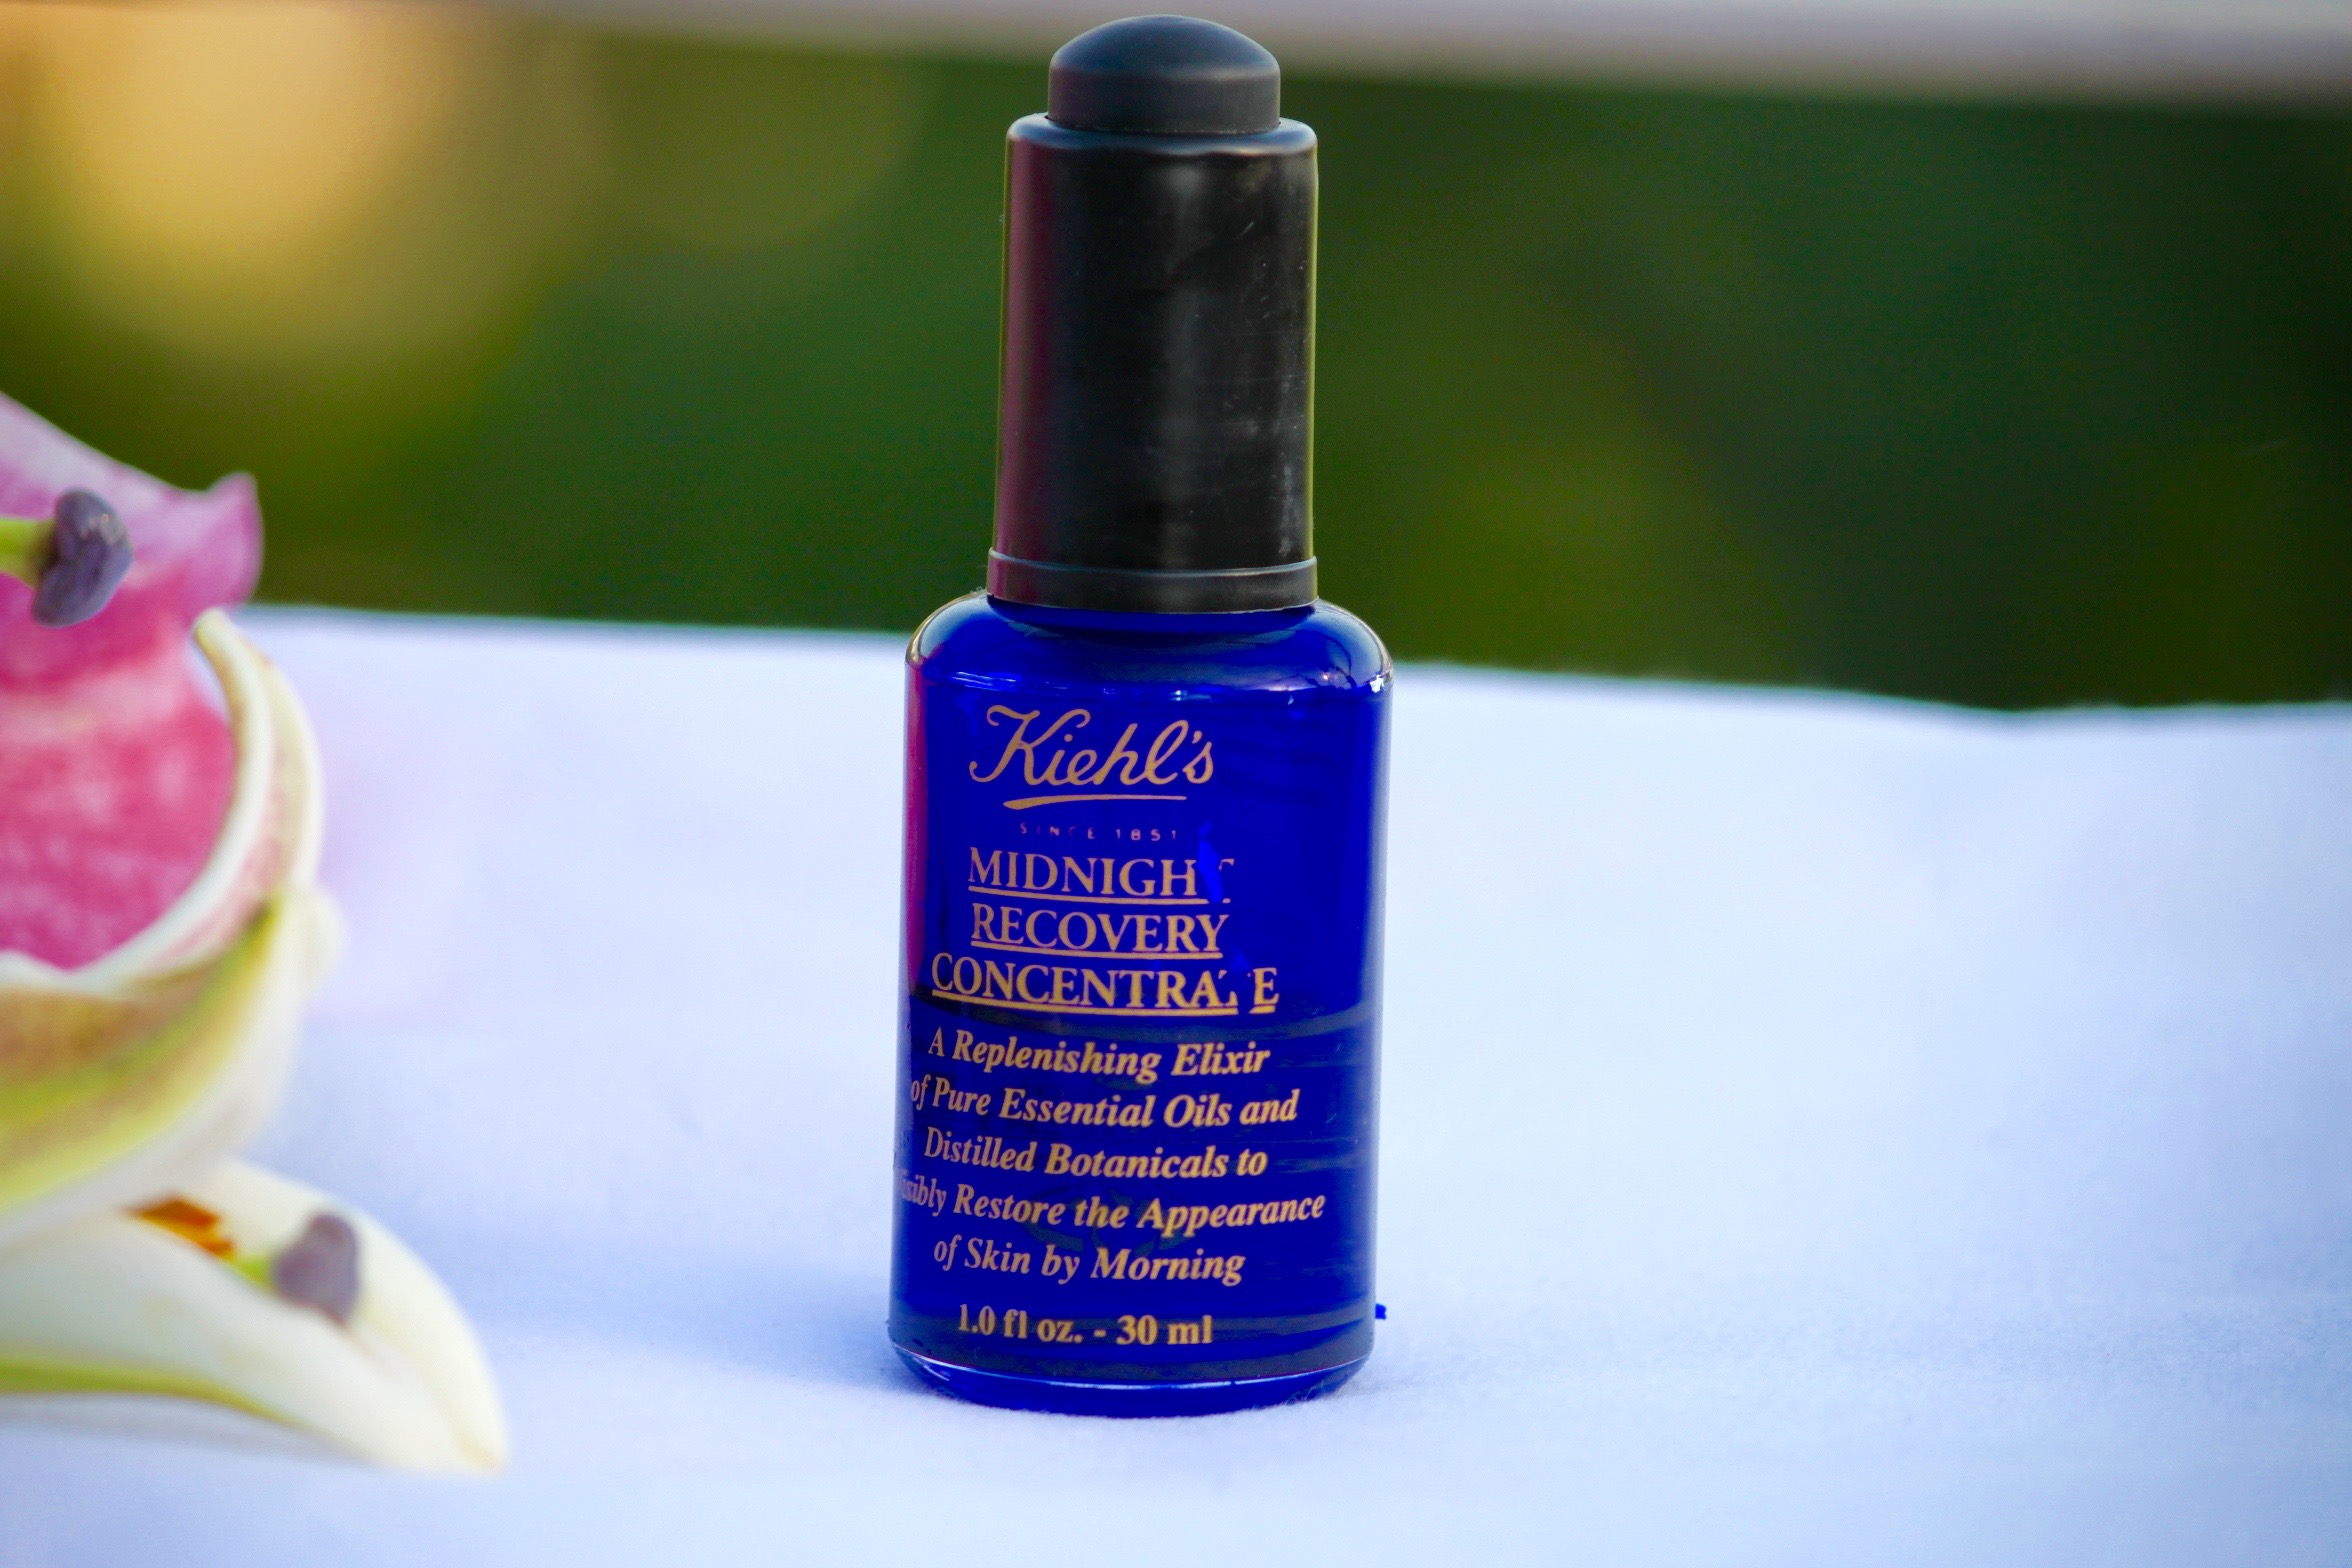 Kiehls Midnight Recovery Concentrate